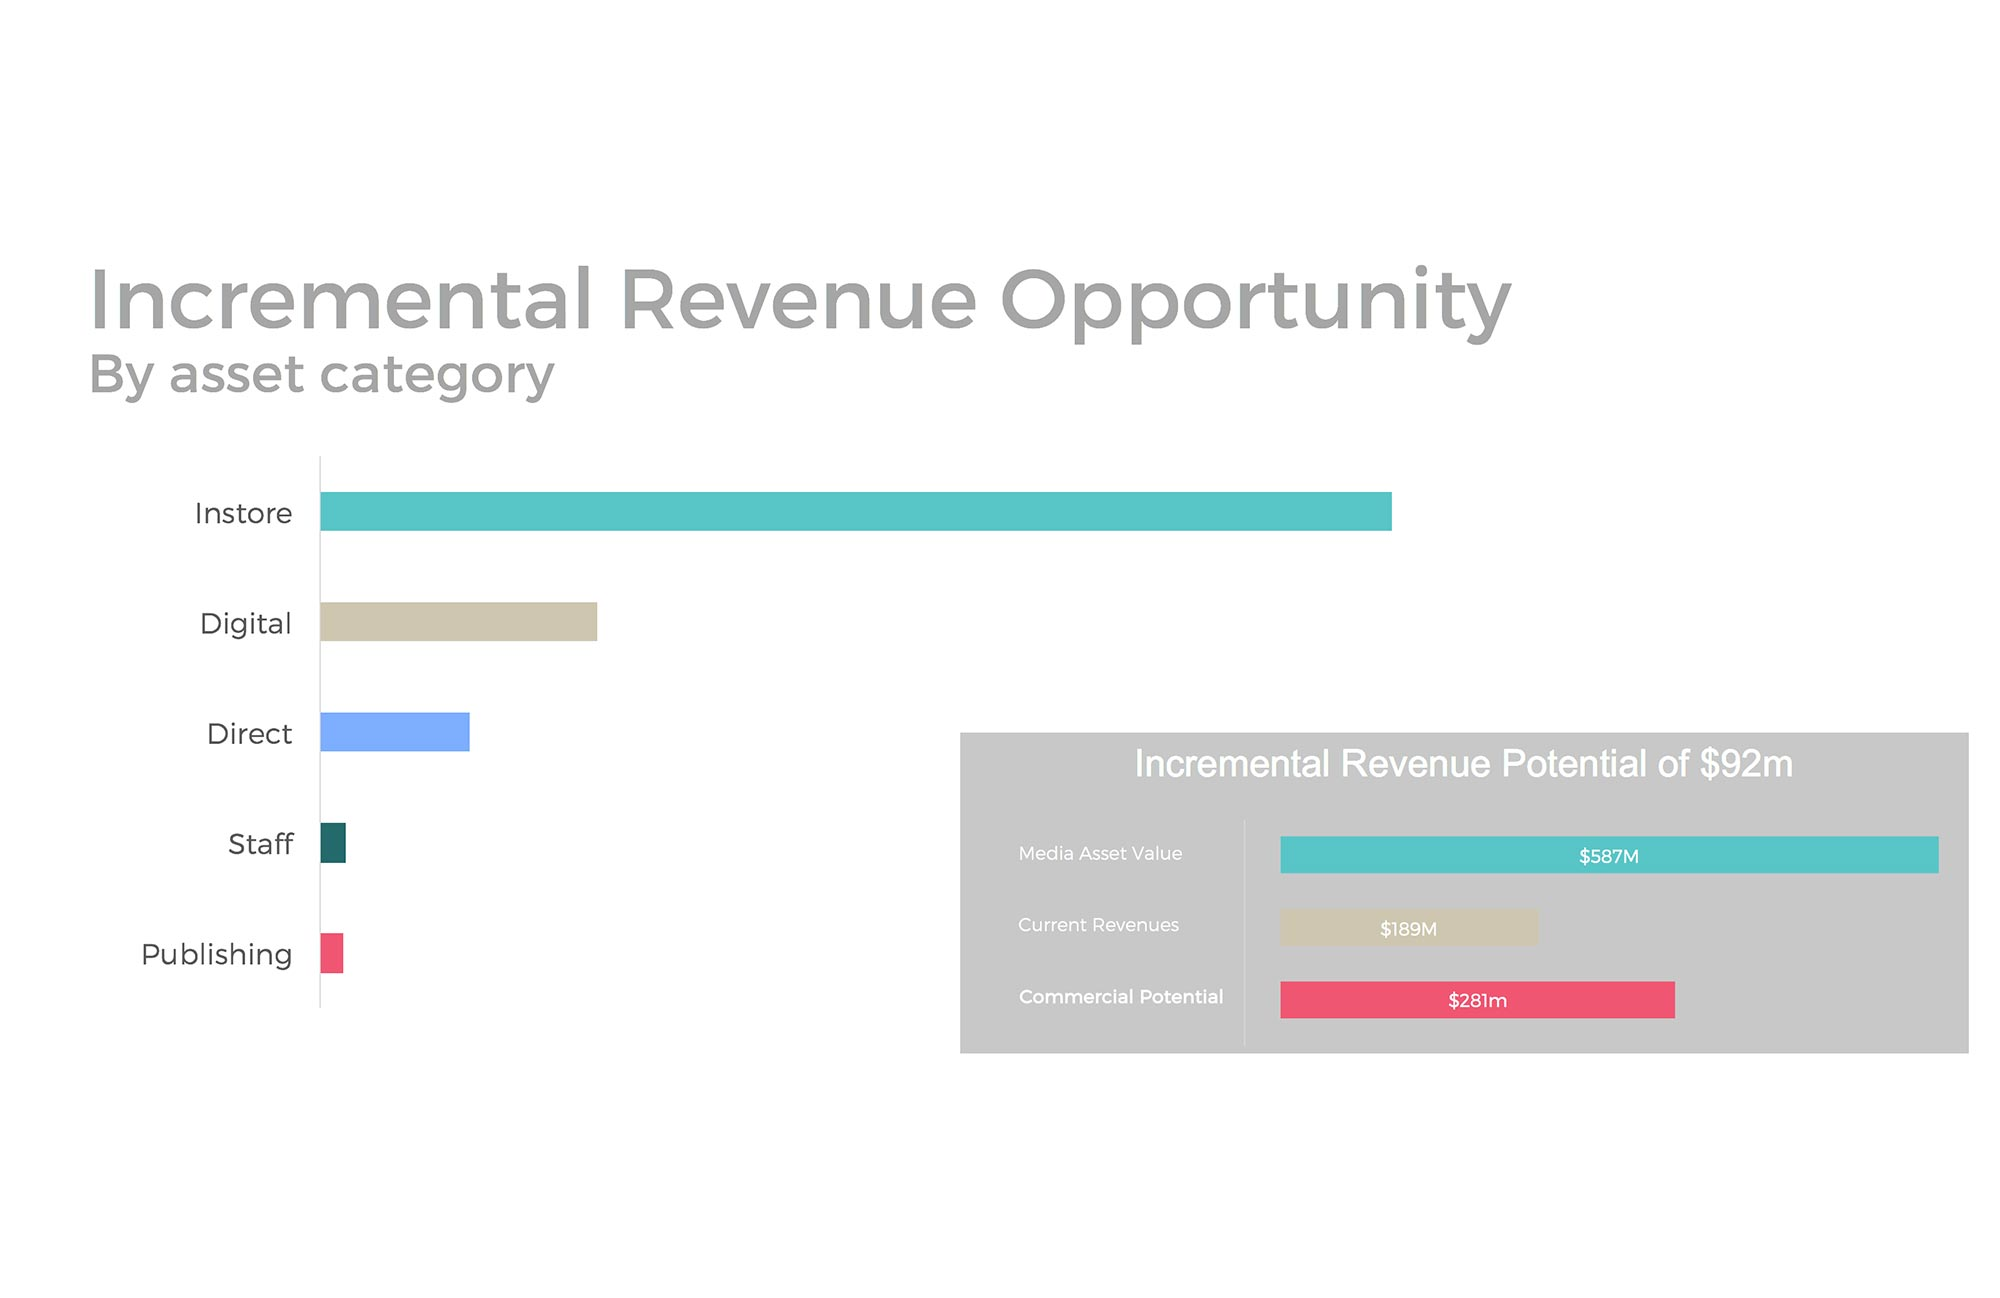 Commercial Potential and incremental revenues